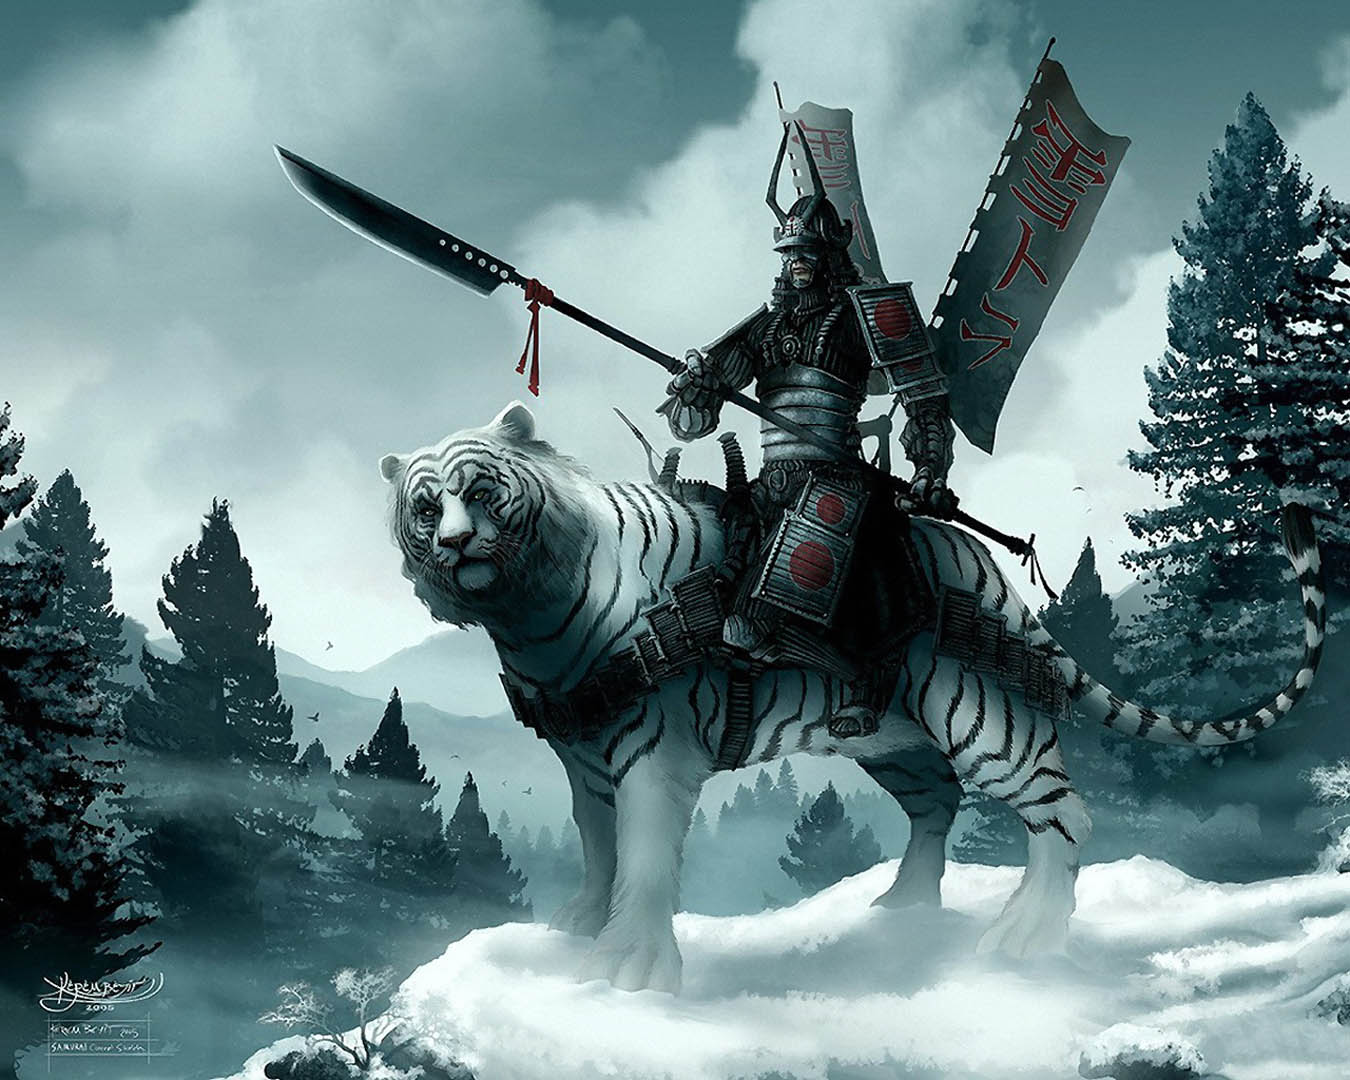 Tomoyea91698 Images Japanese Warrior Mounted On Snow Tiger Hd